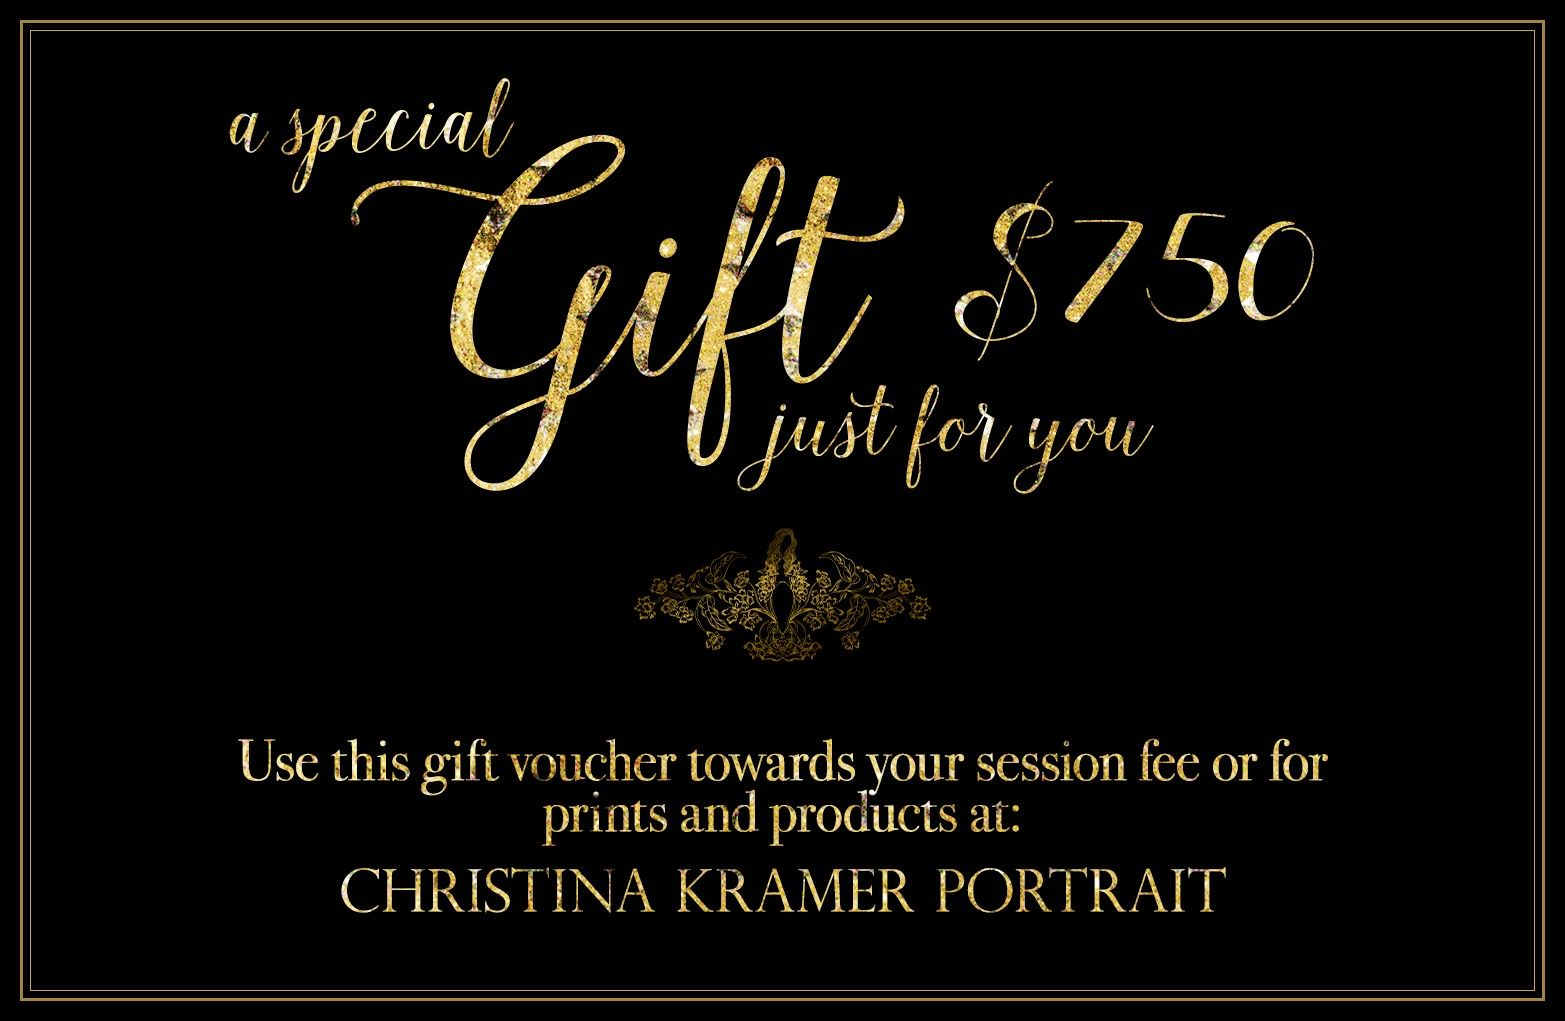 A special gift just for you. Use this $750 gift voucher towards your session fee or for prints and products at: CHRISTINA KRAMER PORTRAIT — LONG BEACH, NEW YORK © Christina Tisi Kramer